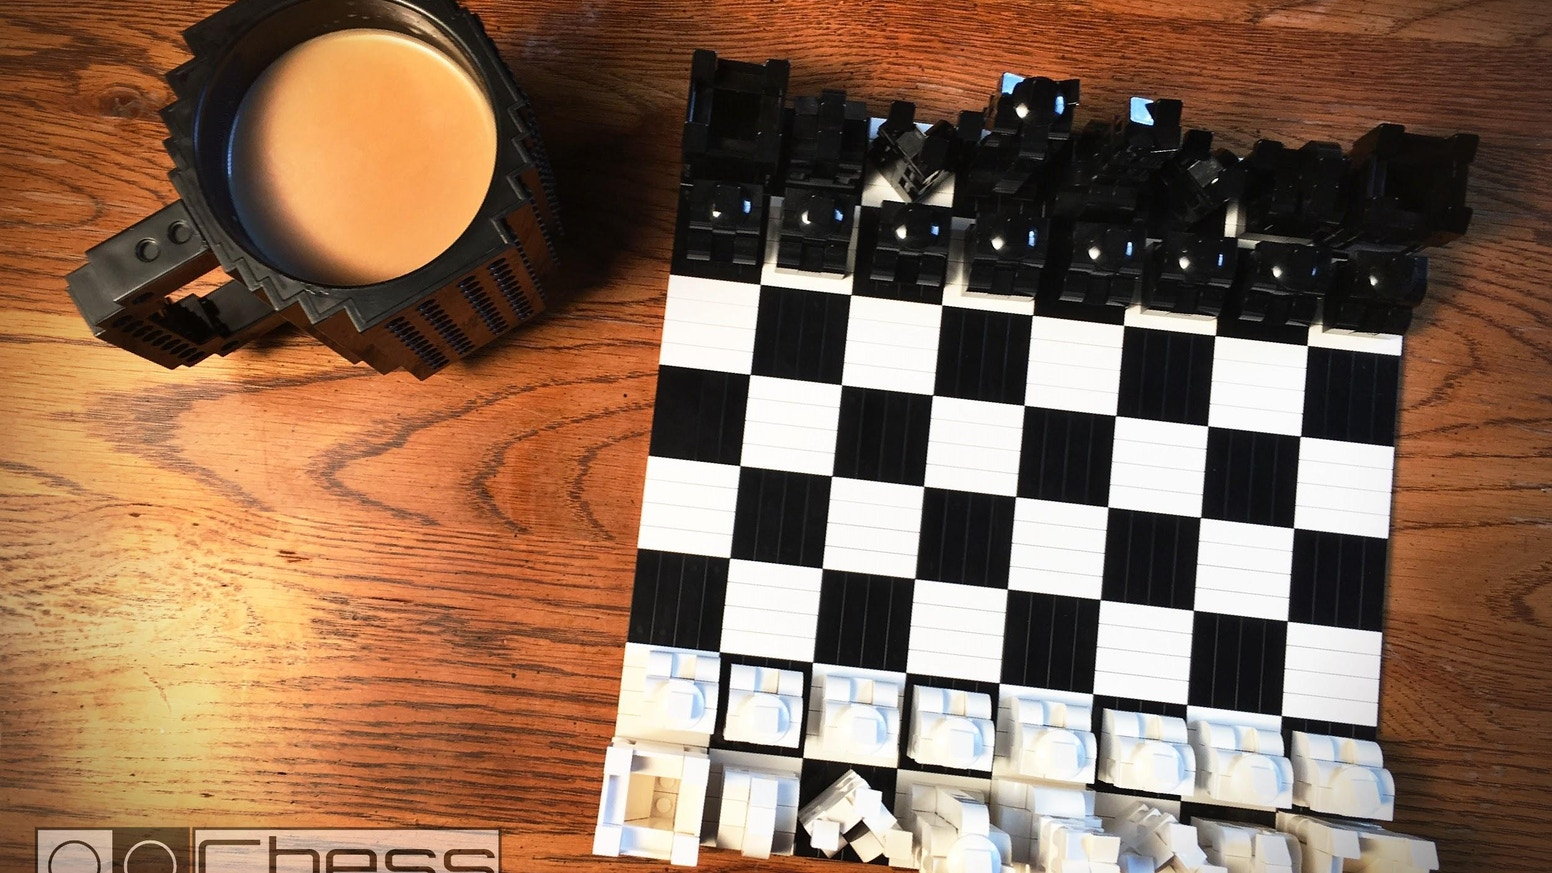 Superior coffee table chess sets  for the LEGO® fan in you.